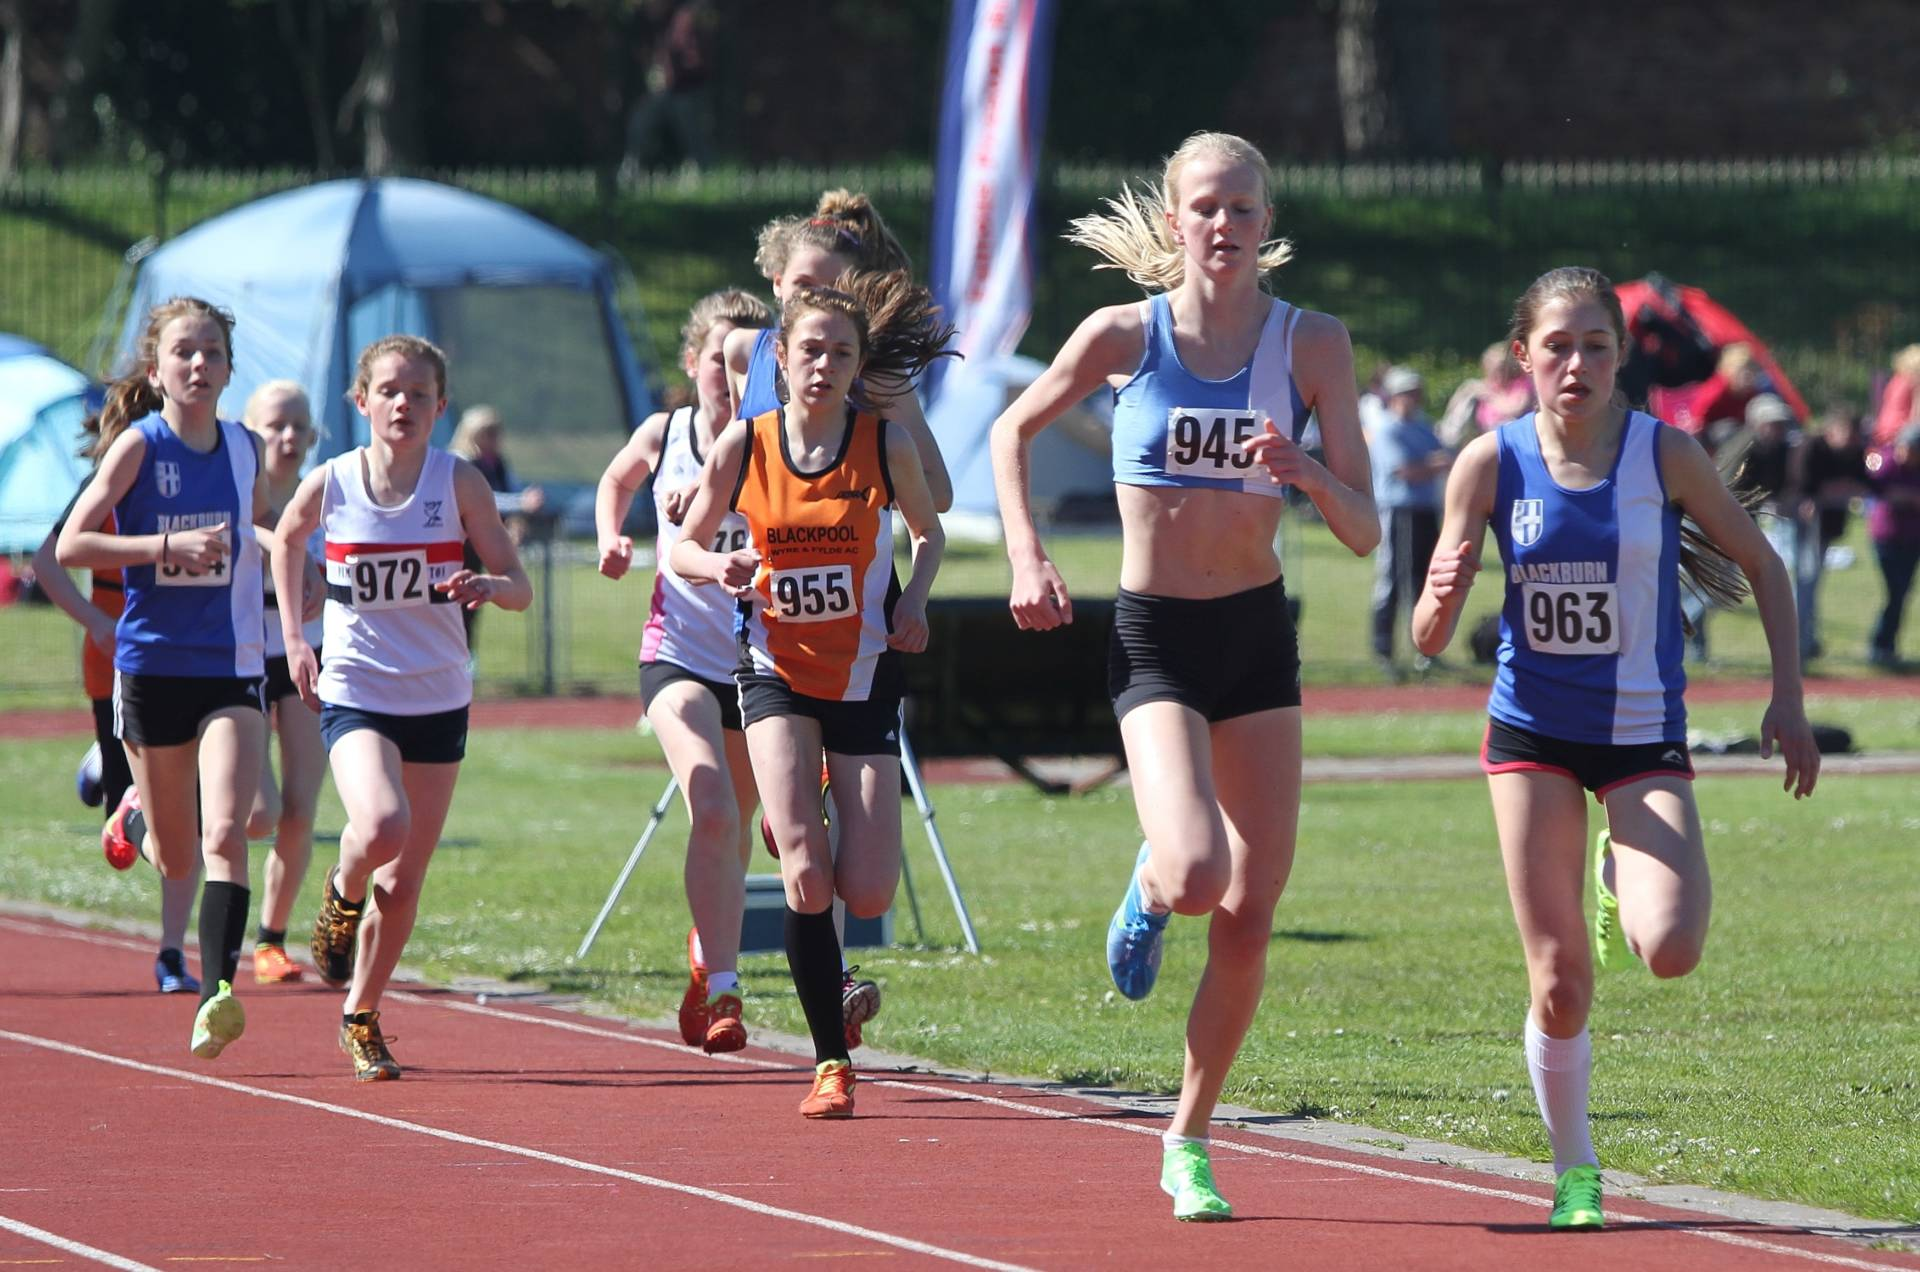 Lancashire County Championships May 24/25th 2013 – (or another windy day at Blackpool!)